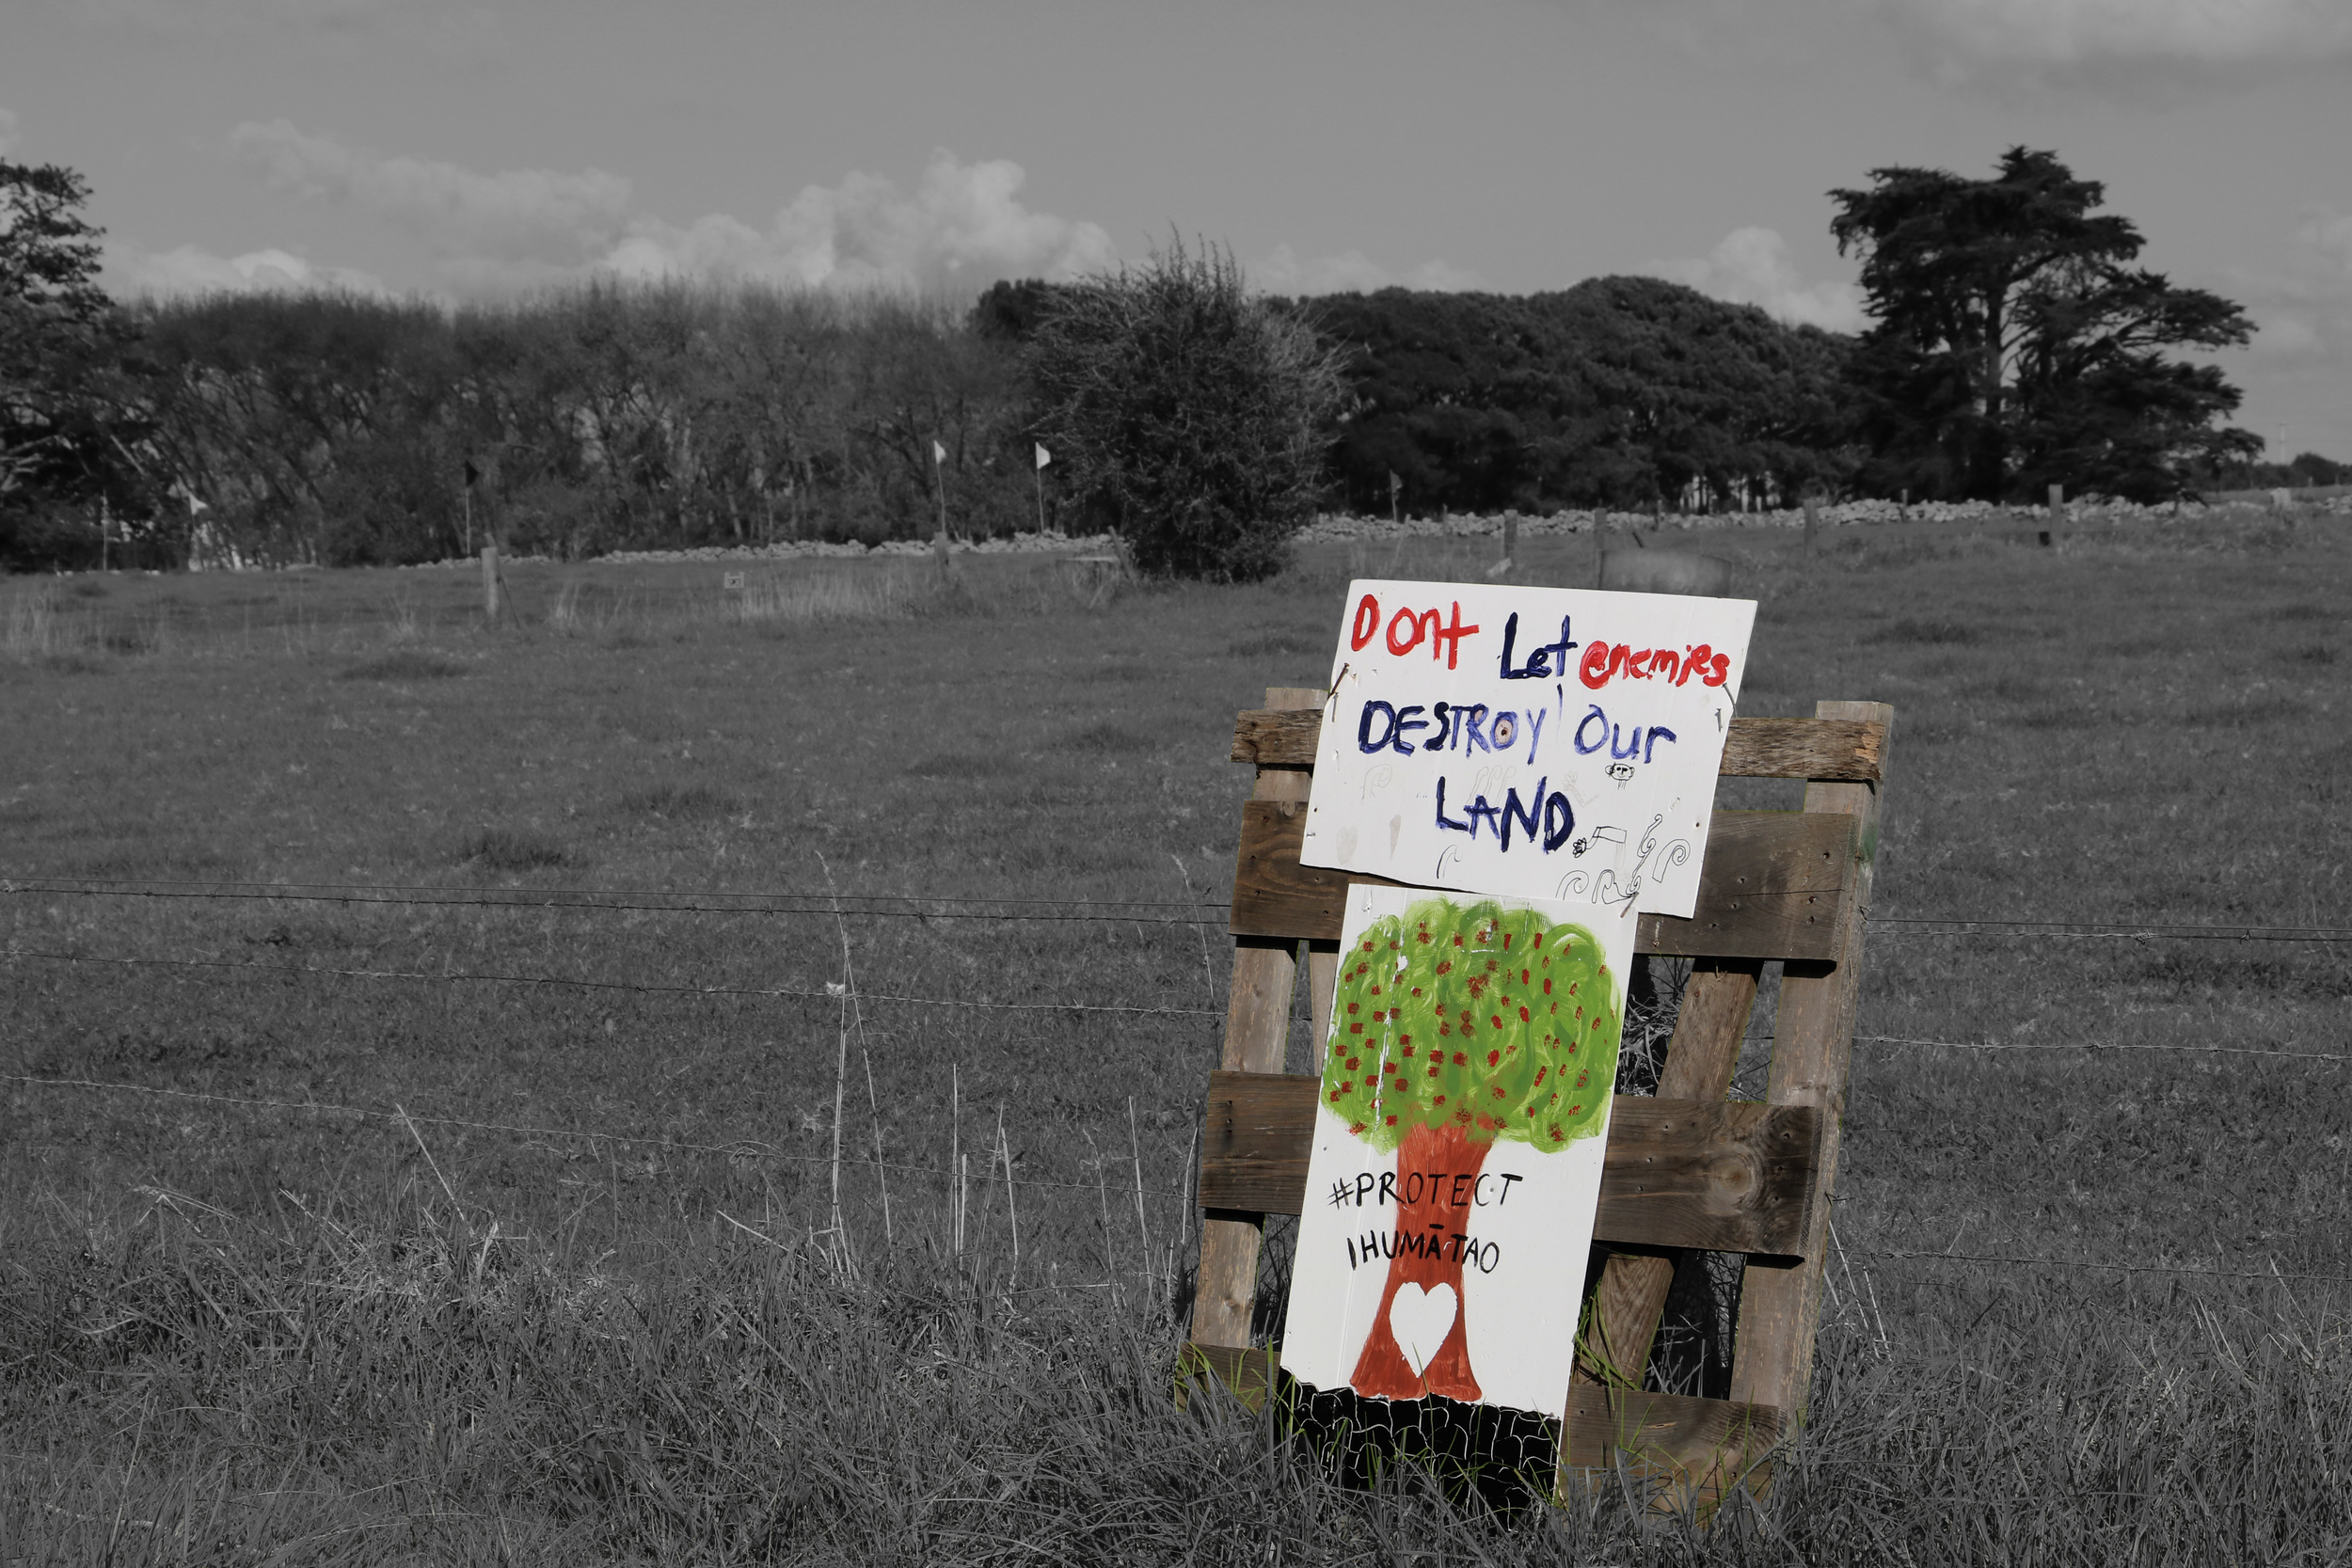 Save Our Unique Landscapes (SOUL) say they are protecting the land in Ihumātao, rather than protesting